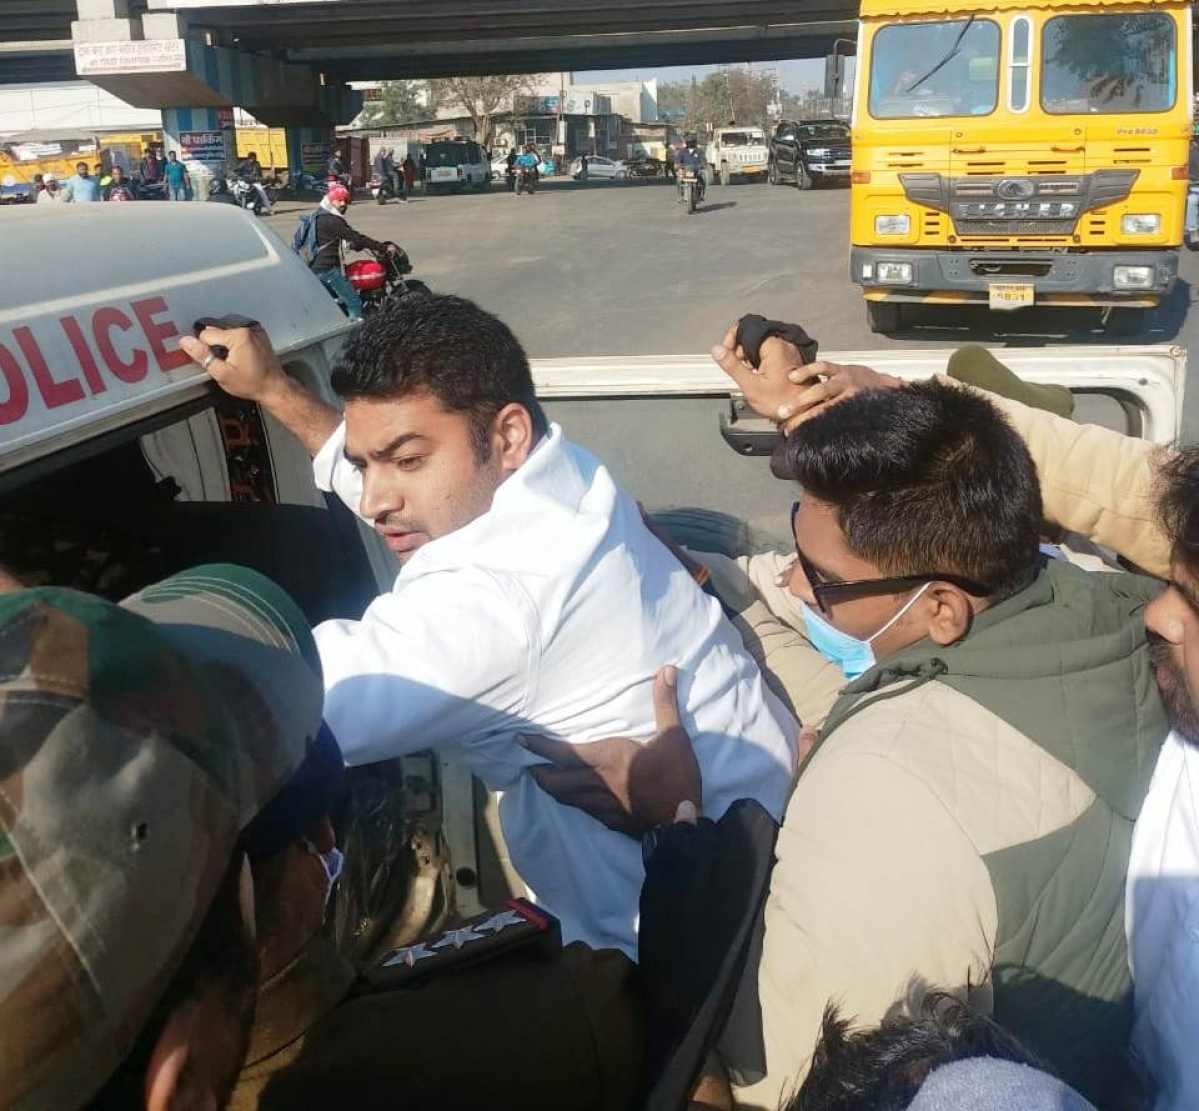 City YC president Ramiz Khan being arrested by police